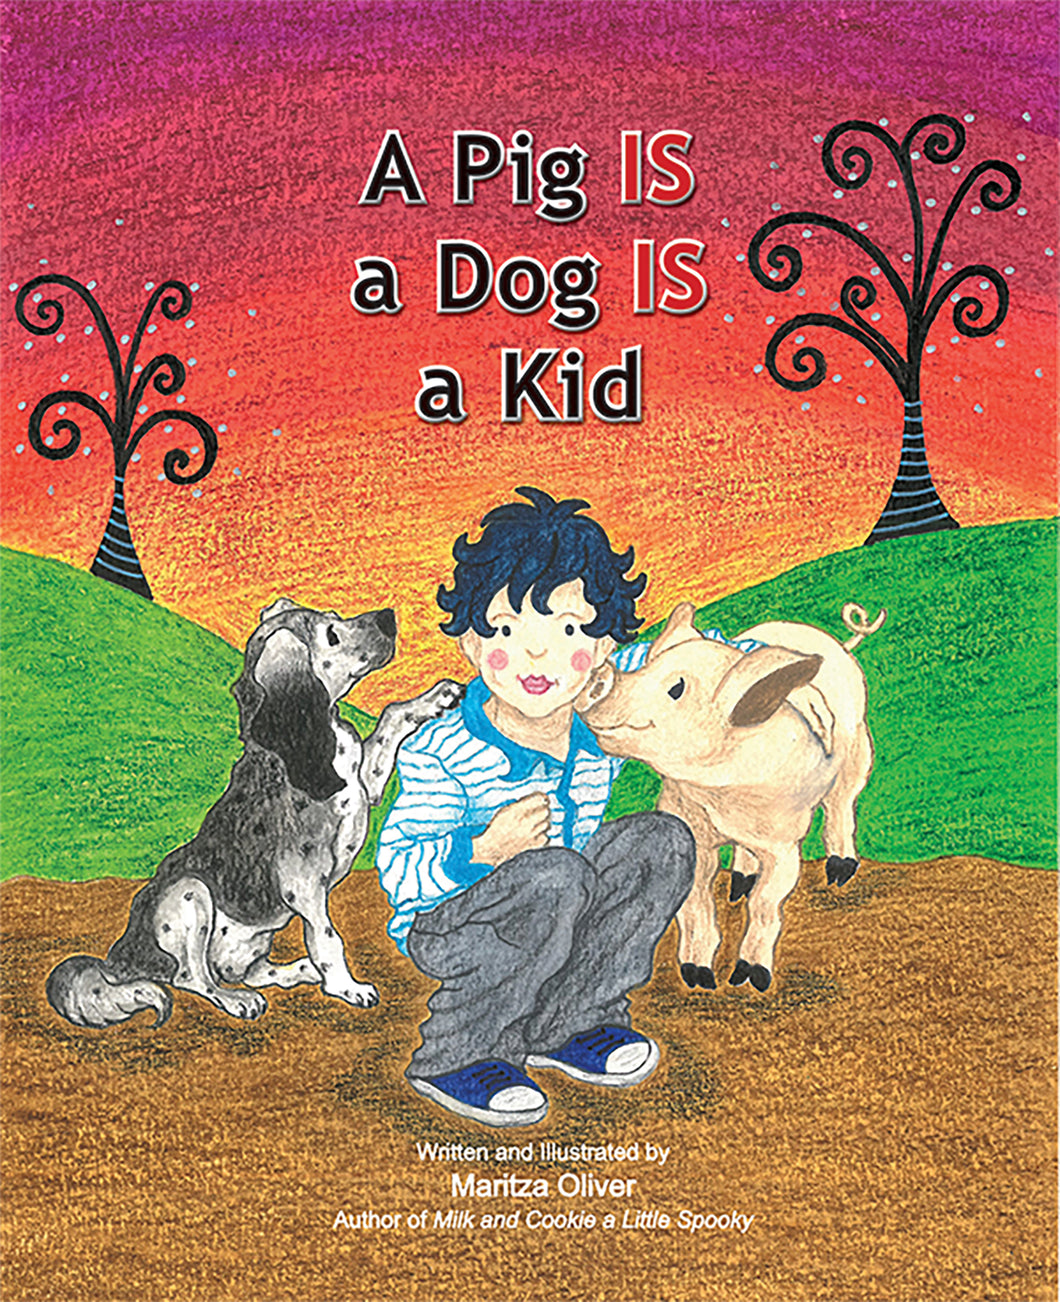 A Pig IS a Dog IS a Kid